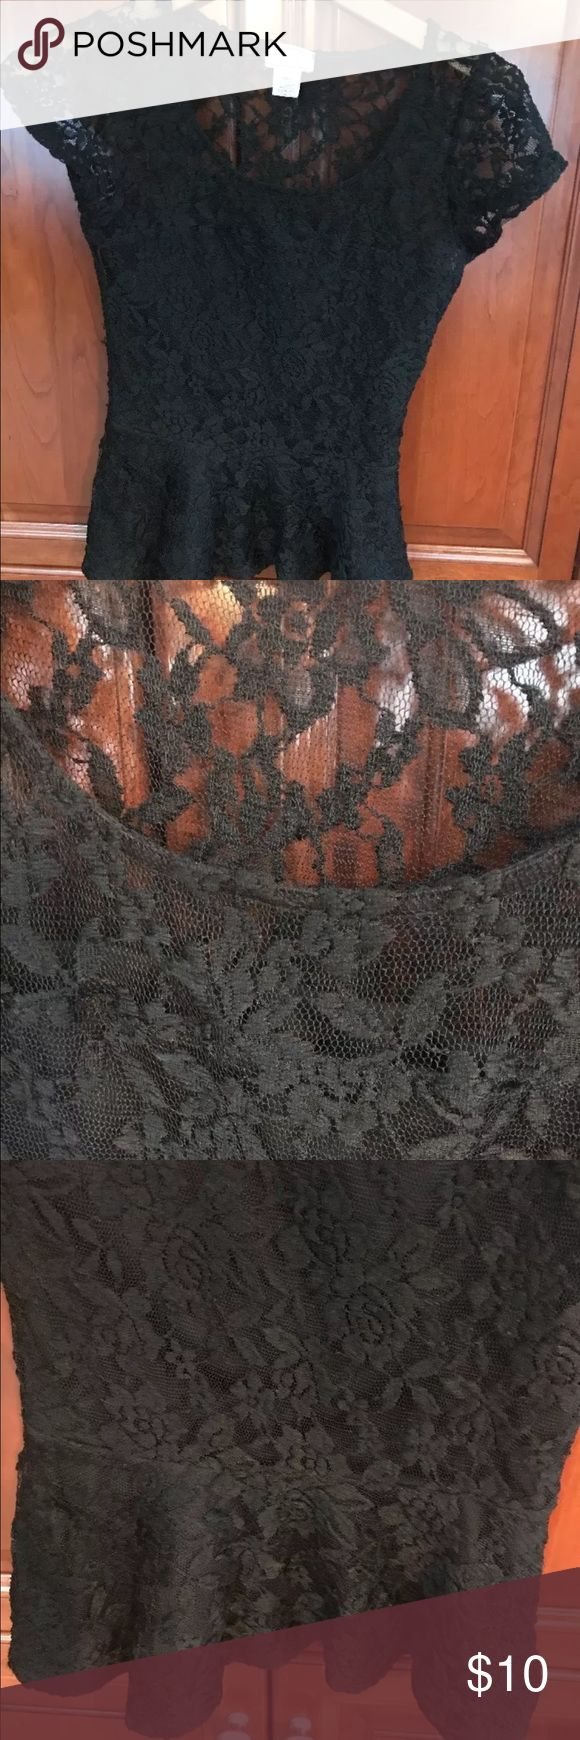 Gorgeous Black Lace Peplum Top SZ Small Gorgeous Black Lace Lined Peplum Top Size Small . Gorgeous , Can be dressed up or down . Excellent Quality and Condition! Tops Blouses